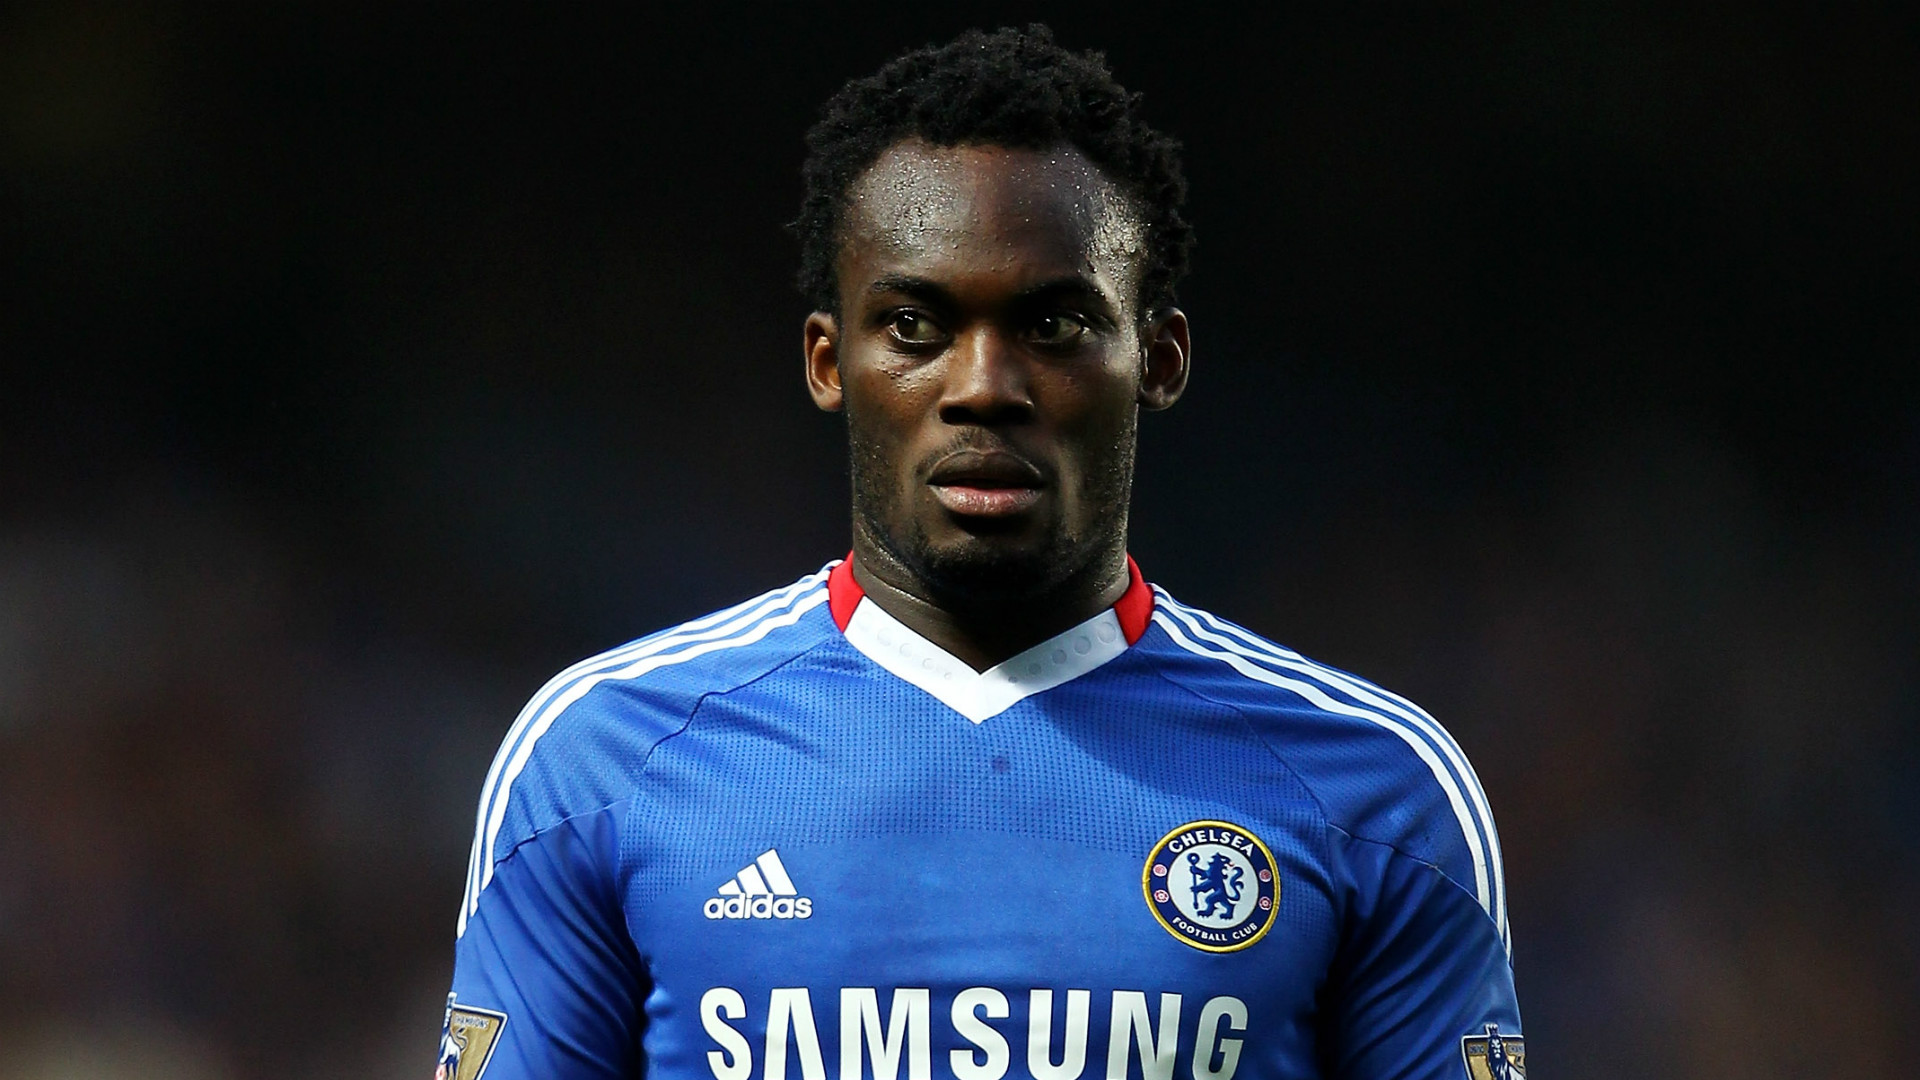 'Tell the Singapore clubs to come get me'- Former Chelsea midfielder Michael Essien open to Singapore stint